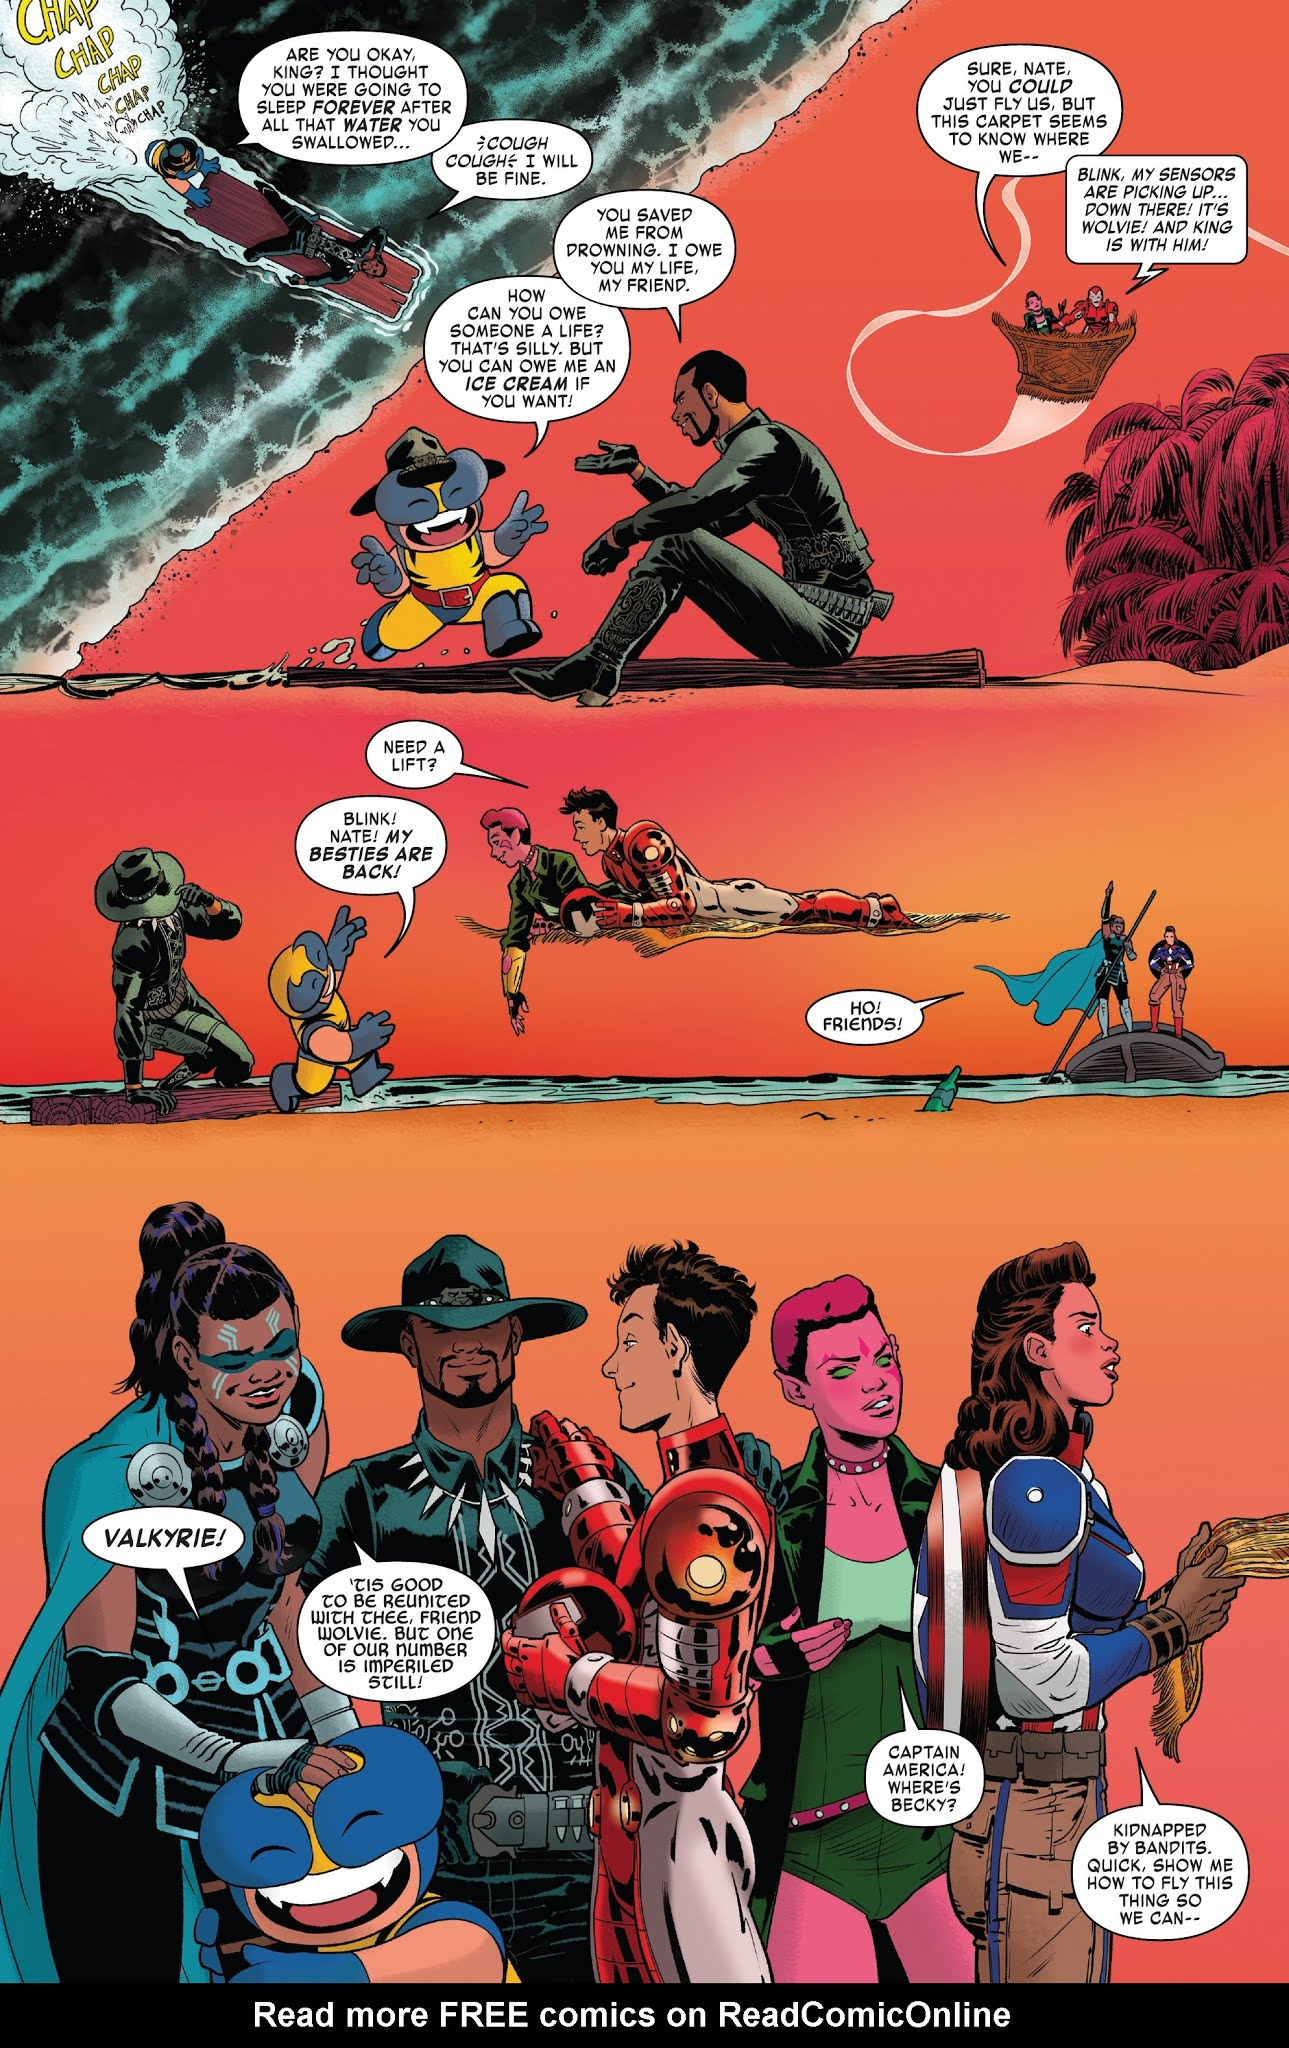 Exiles (2018) #9 - Read Exiles (2018) Issue #9 Page 18